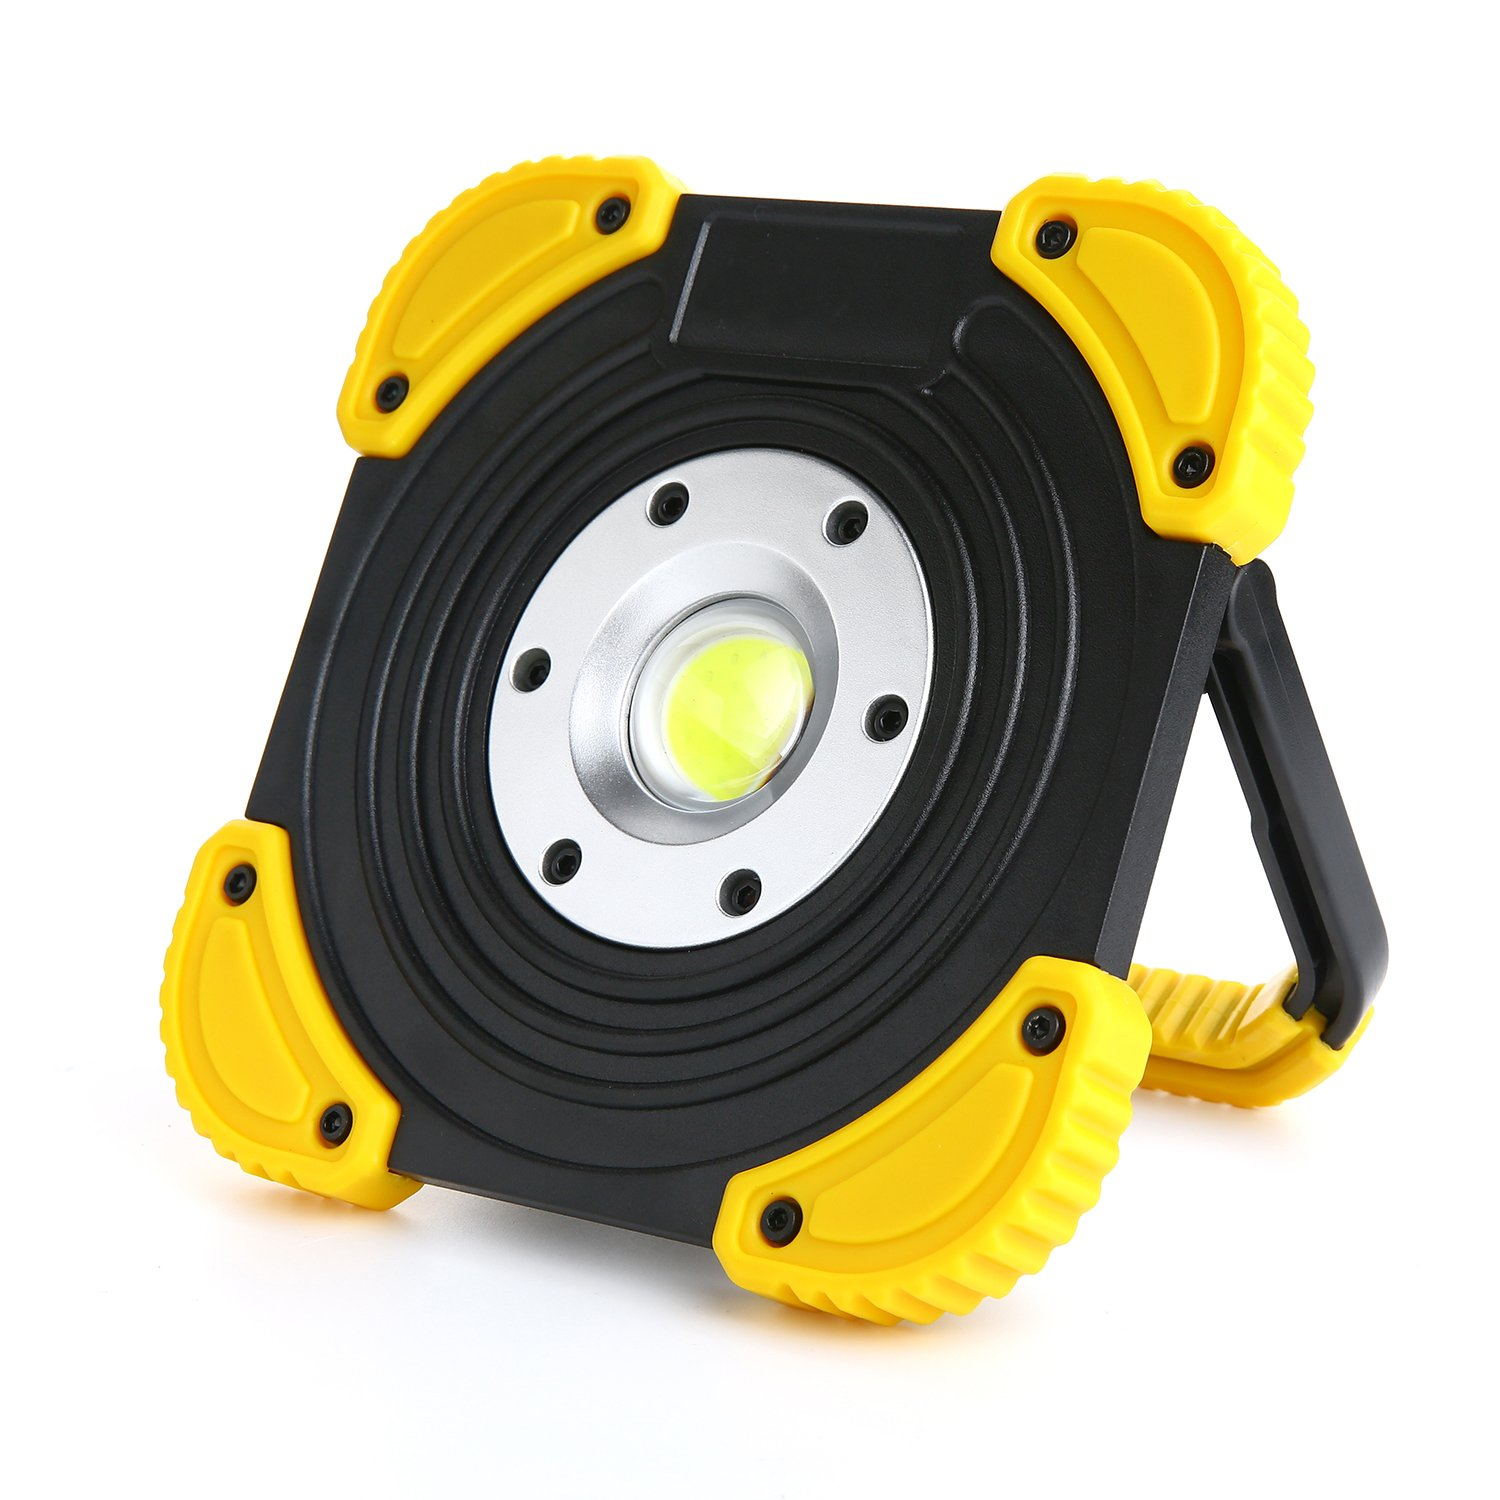 Portable LED Work Light with Stand, Cordless 1100 Lumens Work Lights for Shop Site Truck Garage by Hisonde (Image #1)